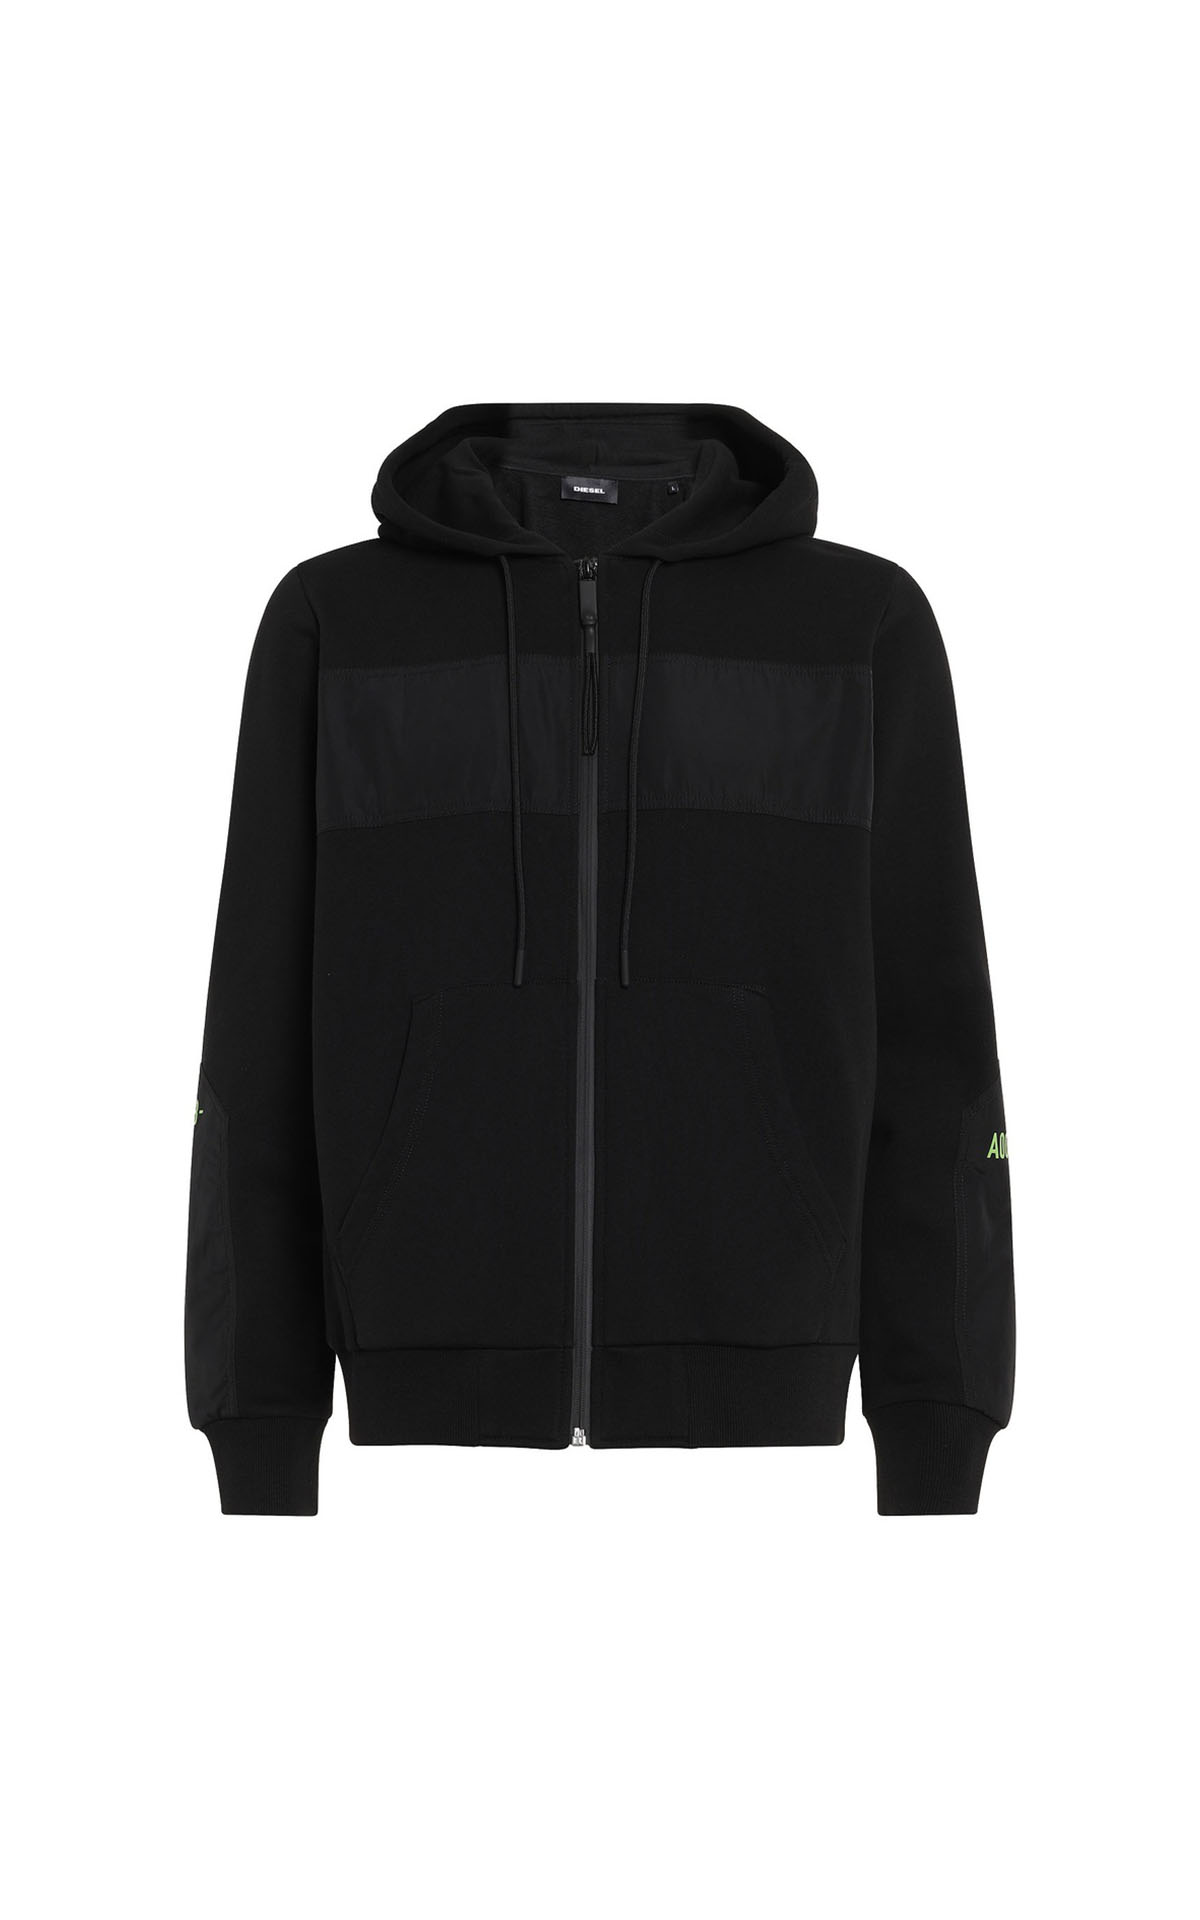 Diesel panelled zip-up hoodie with fluo print at The Bicester Village Shopping Collection